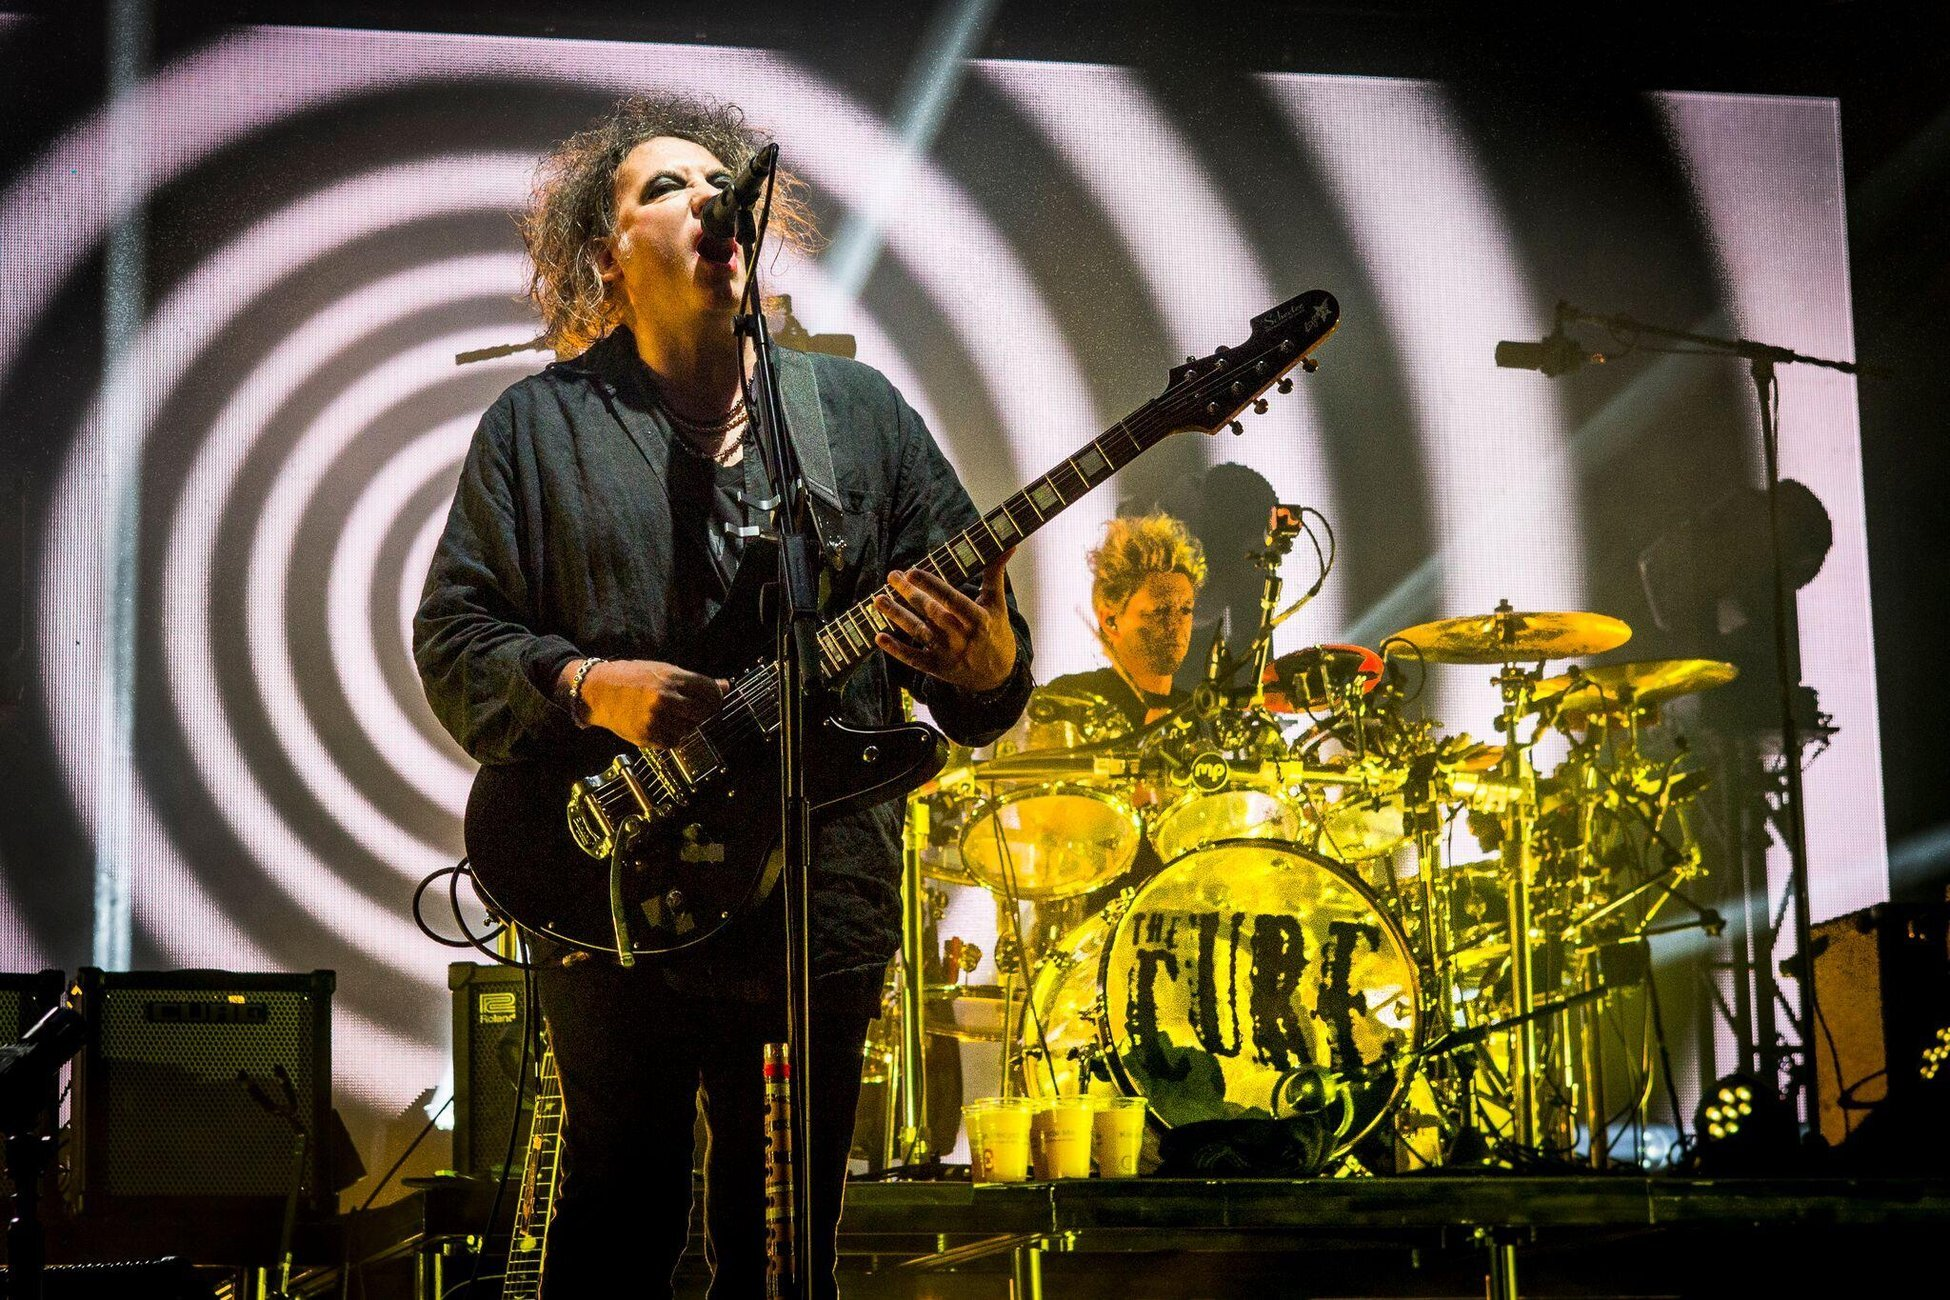 the-cure-live-at-bestival-2016.jpg